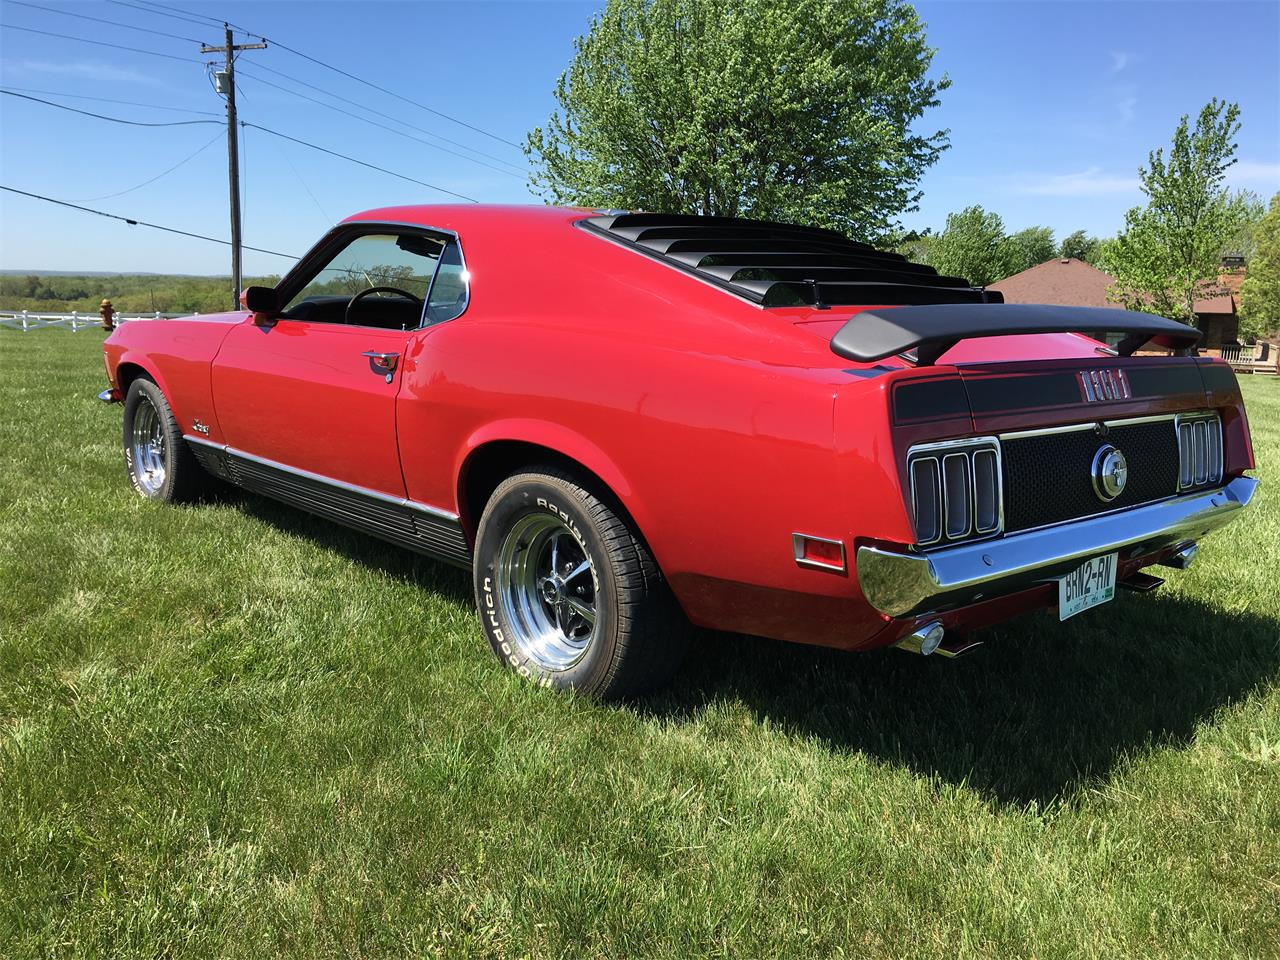 Large Picture of Classic '70 Mustang Mach 1 located in Missouri Offered by Payne Motor Co. - KZXT